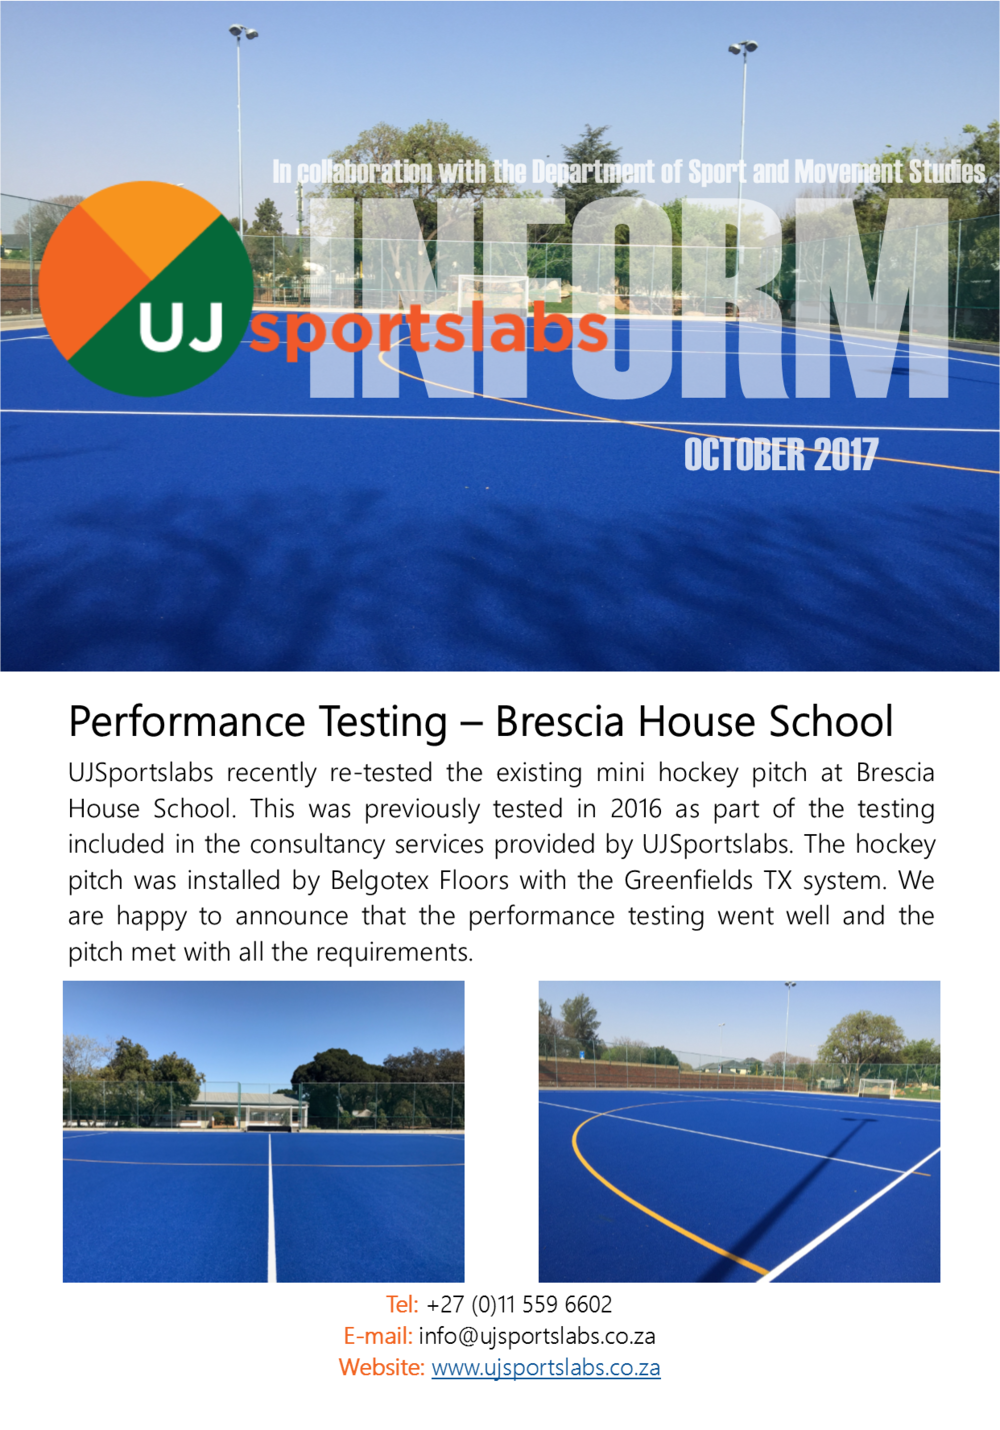 UJSportslabs Article-October 2017.png